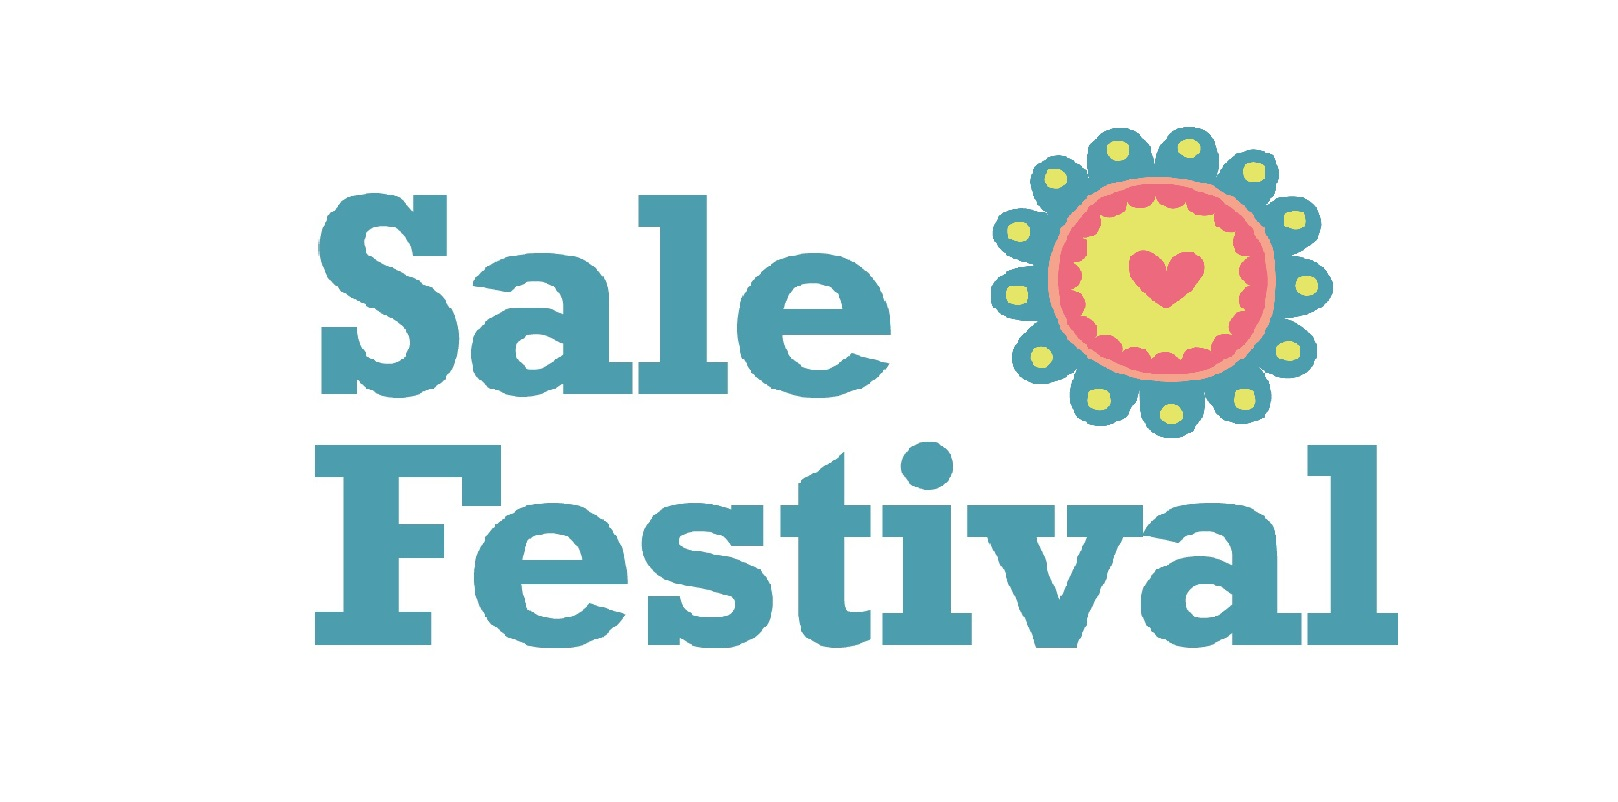 Sale Festival: Primary School Choir Celebration